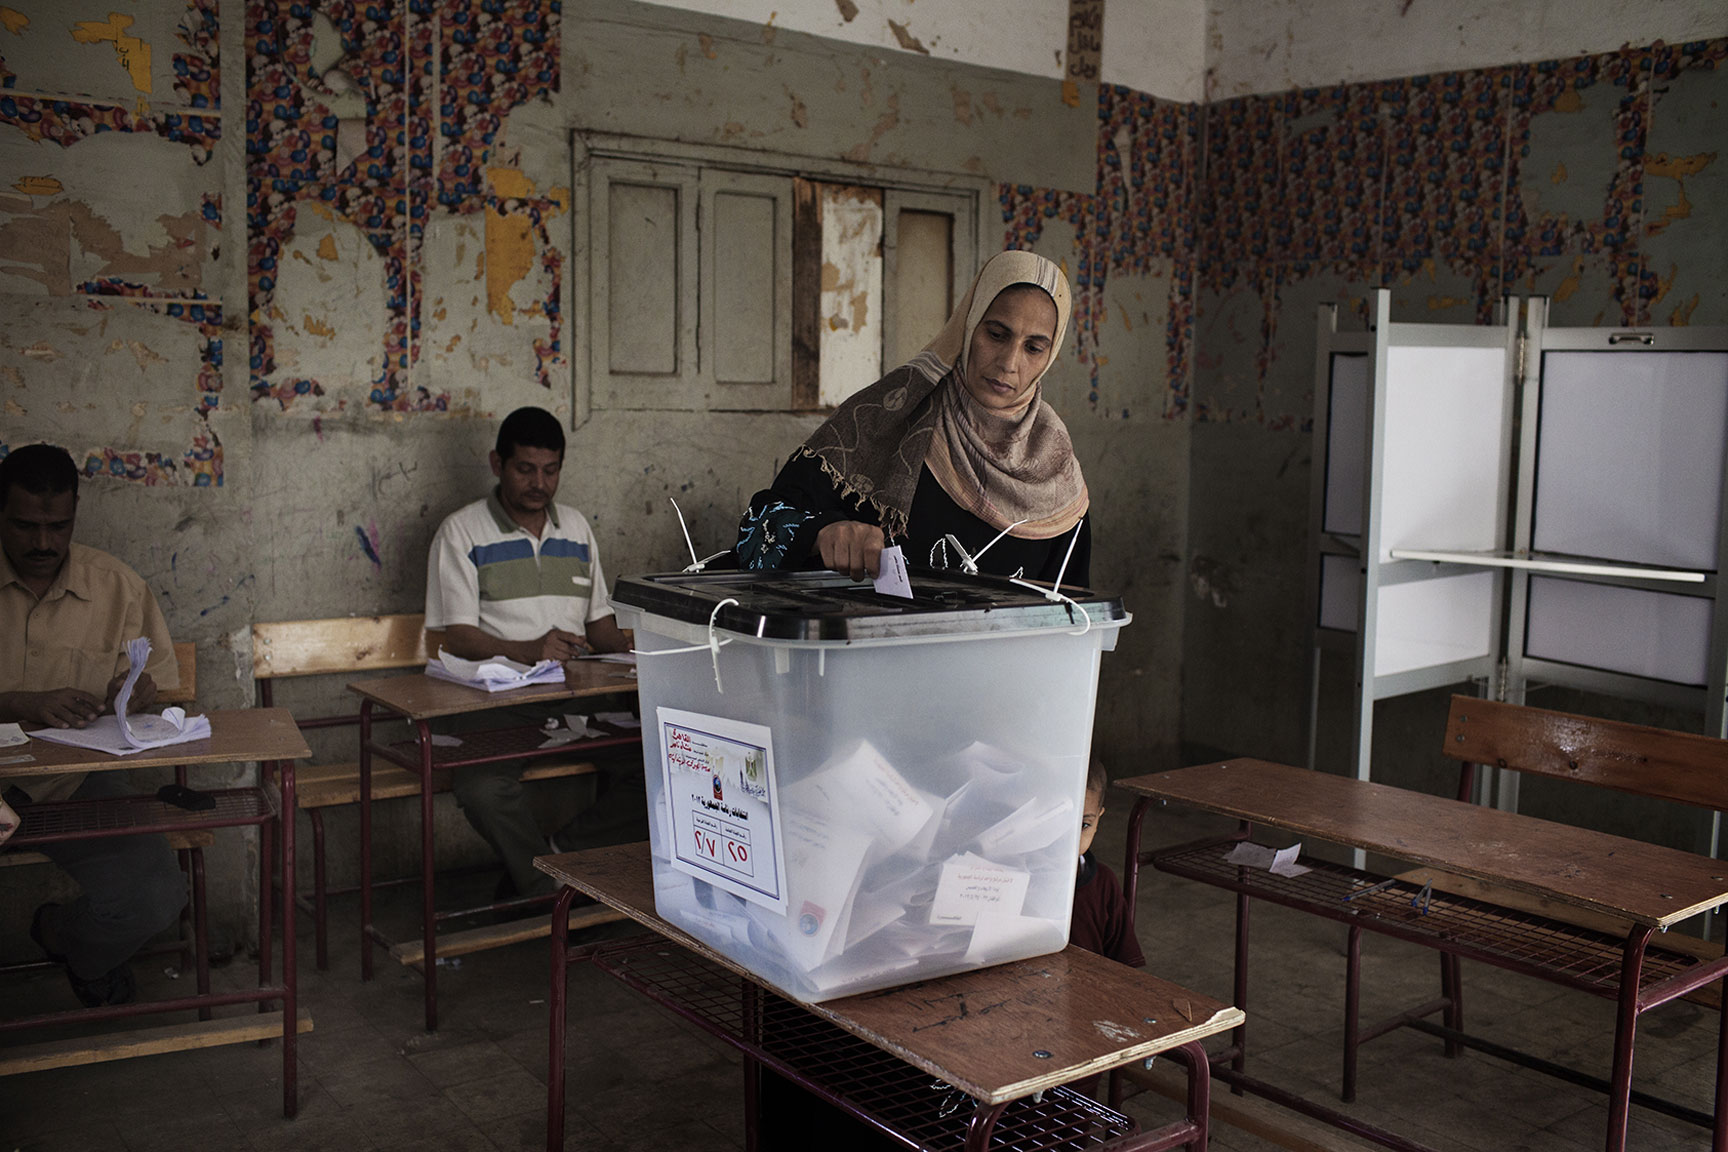 EGYPT_ELECTIONS_PRESIDENTIAL_VOTING_20120524_4720-copy.jpg